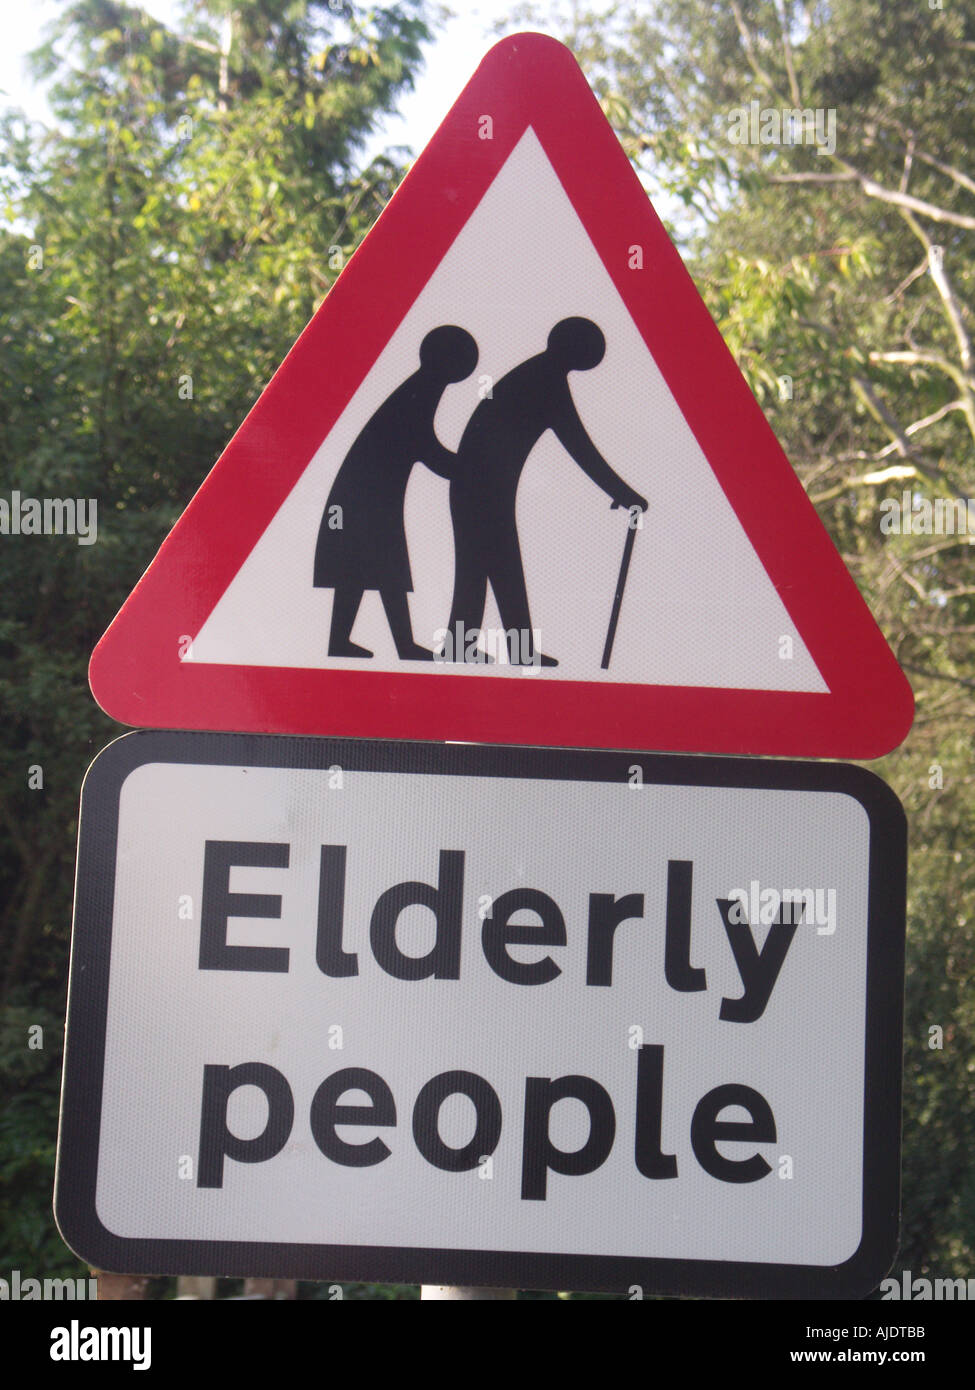 Elderly people crossing red triangular road sign - Stock Image